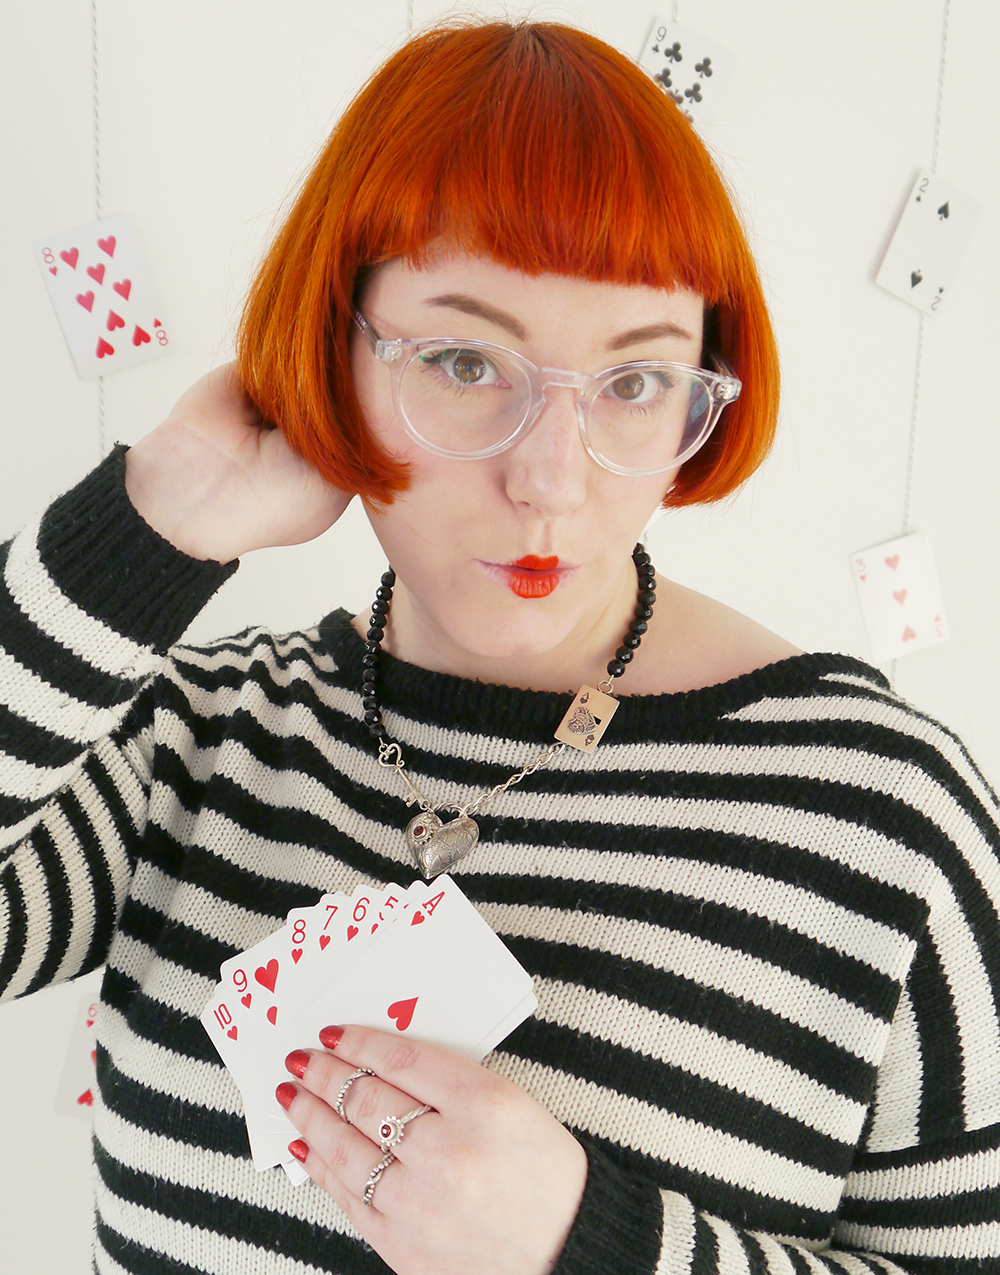 Queen of Hearts, Alice in Wonderland, Queen of Hearts outfit, red queen, literary style, Karen Smith jewellery, heart jewellery, Dundee jewellery, Dundee design, Scottish jewellery design, red  hair, dinger, Scottish blogger, pack of cards, Iolla glasses, clear glasses, red lips, doll lips, stripey jumper, gold skirt, red glitter hearts